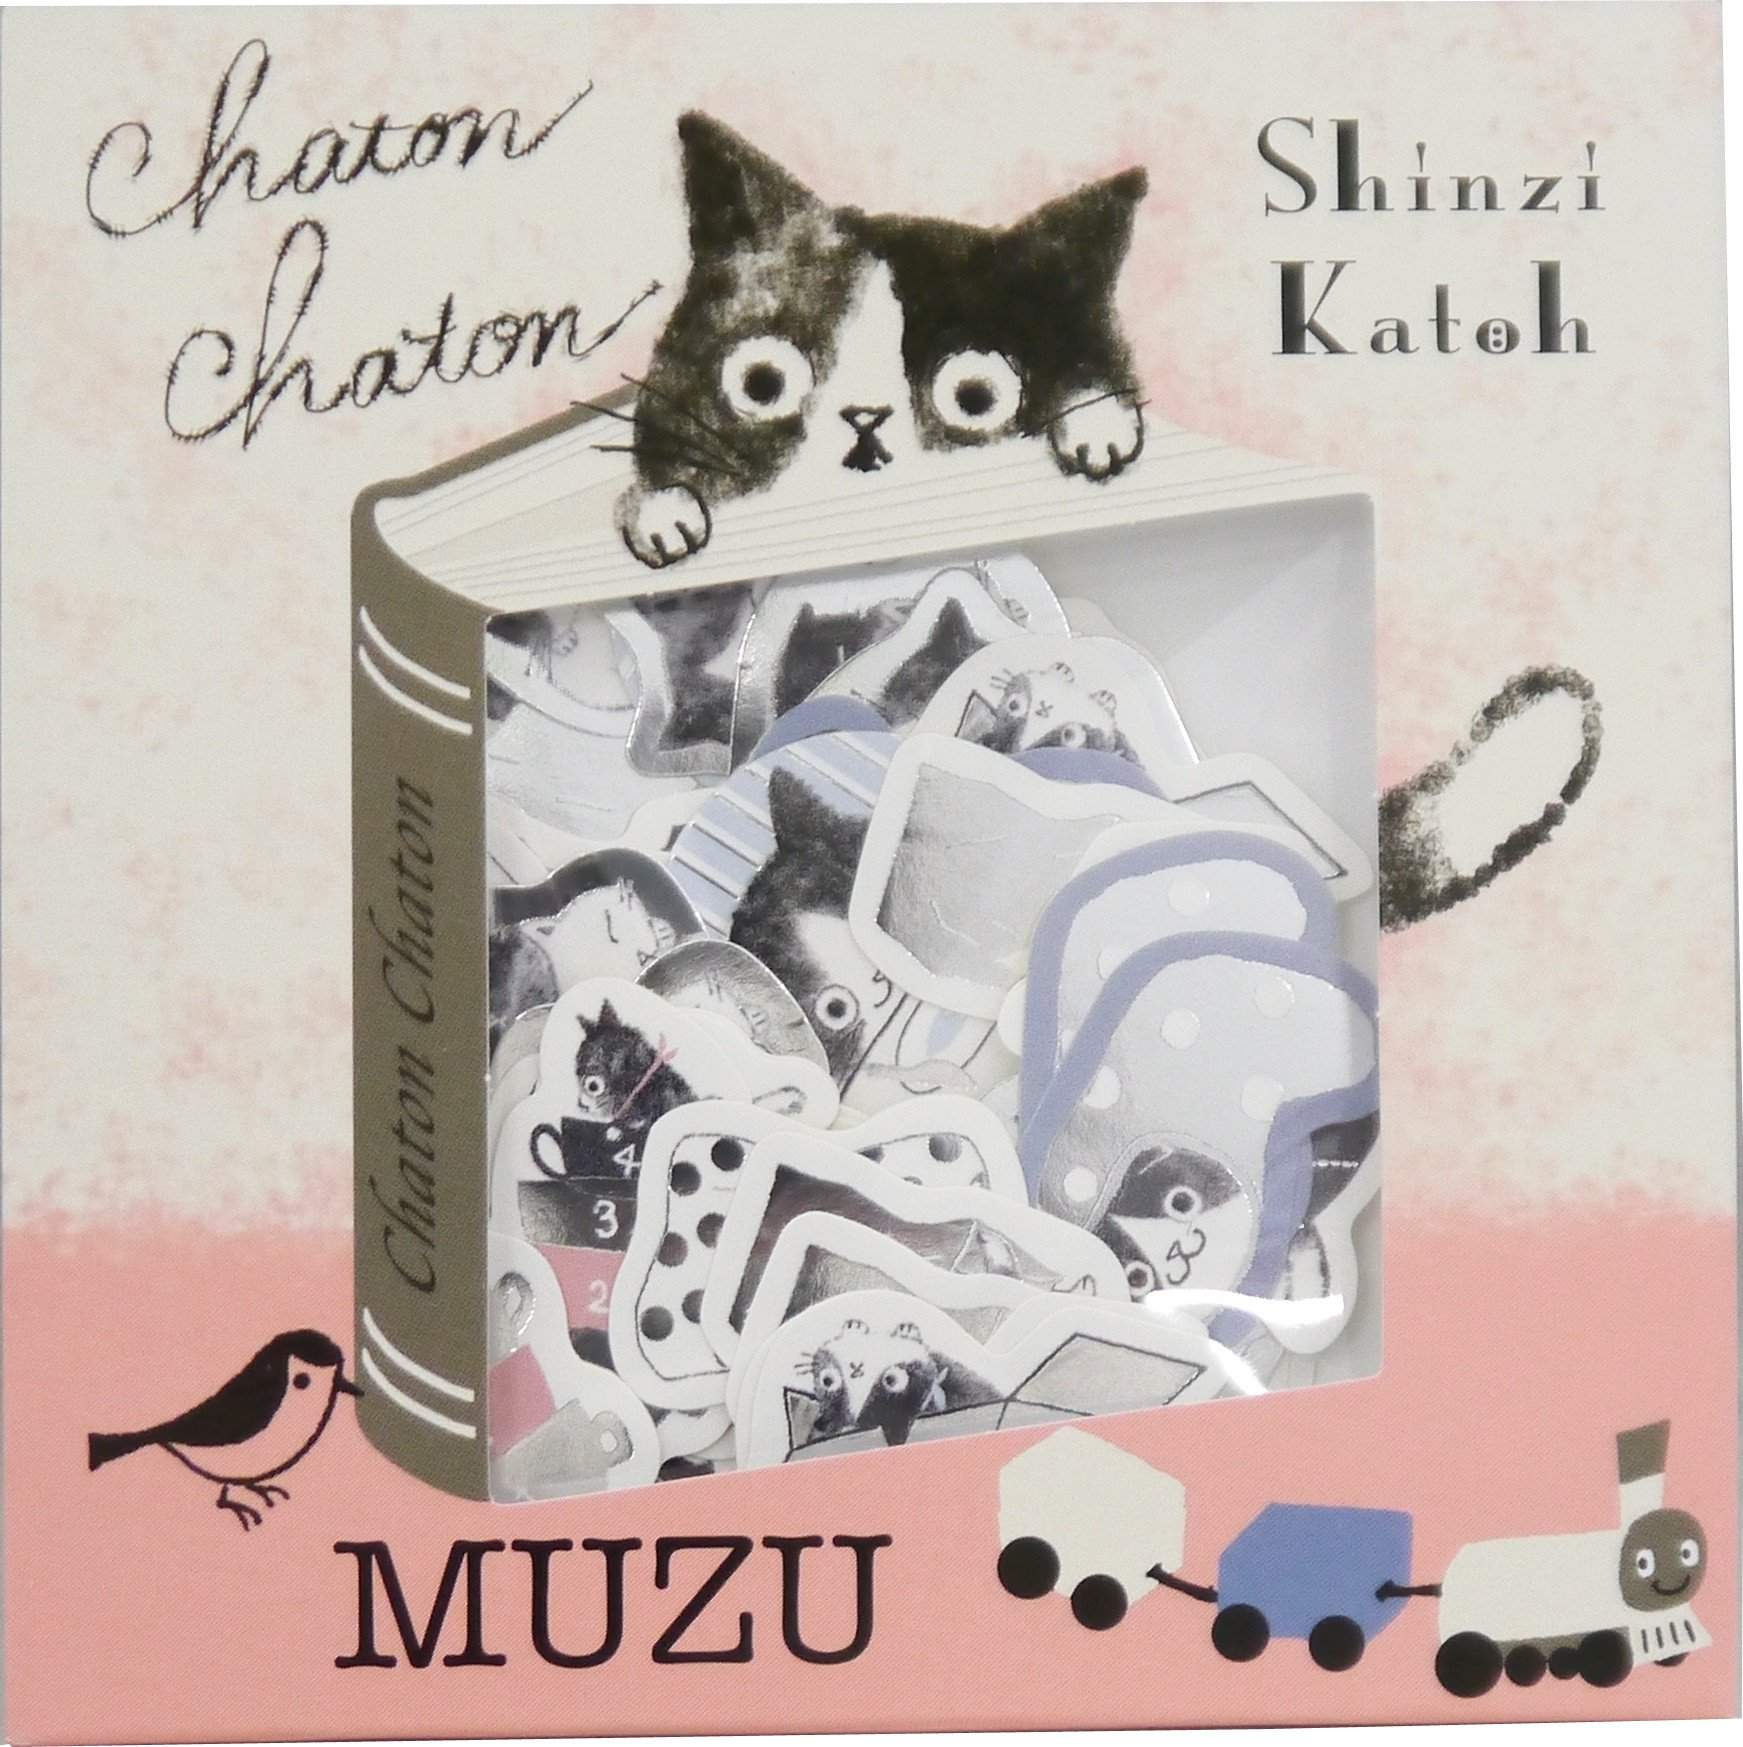 מדבקות סיפור - Chaton Chaton-Shinzi Katoh - SD-Shoppu